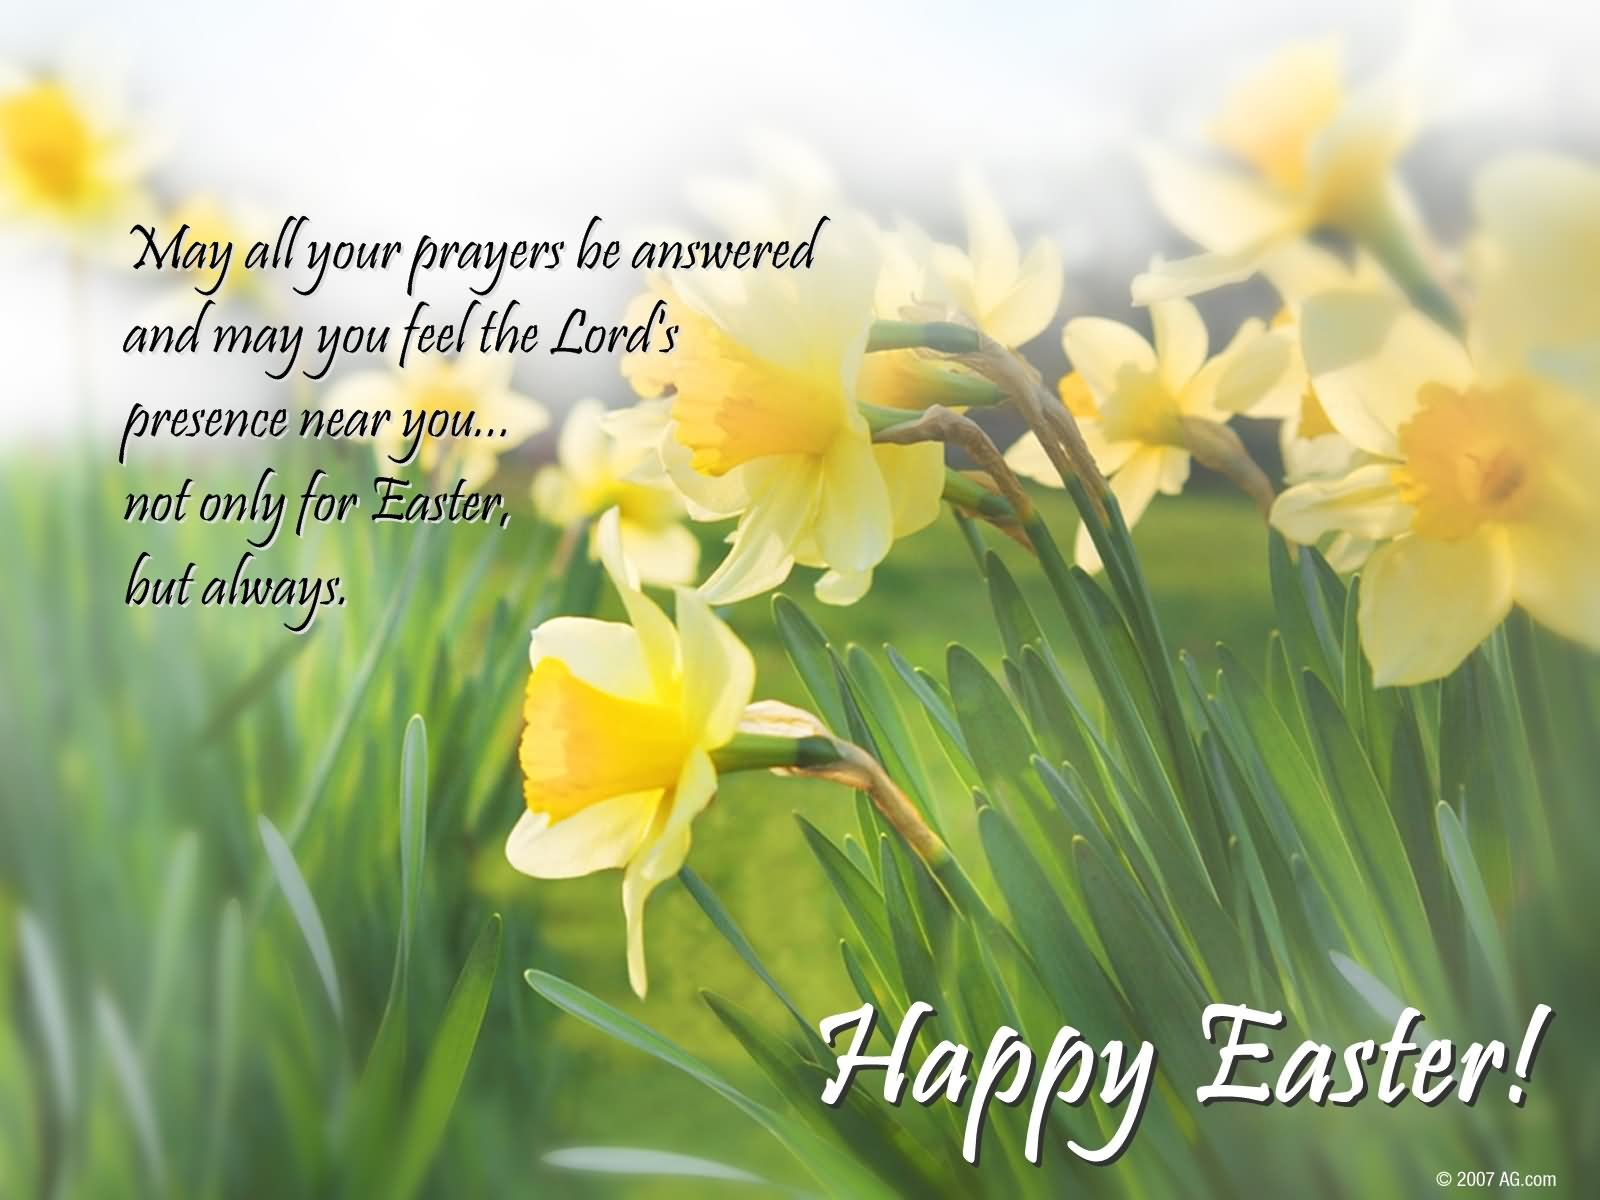 May All Your Prayers Be Answered And May You Feel The Lord's Presence Near You Happy Easter